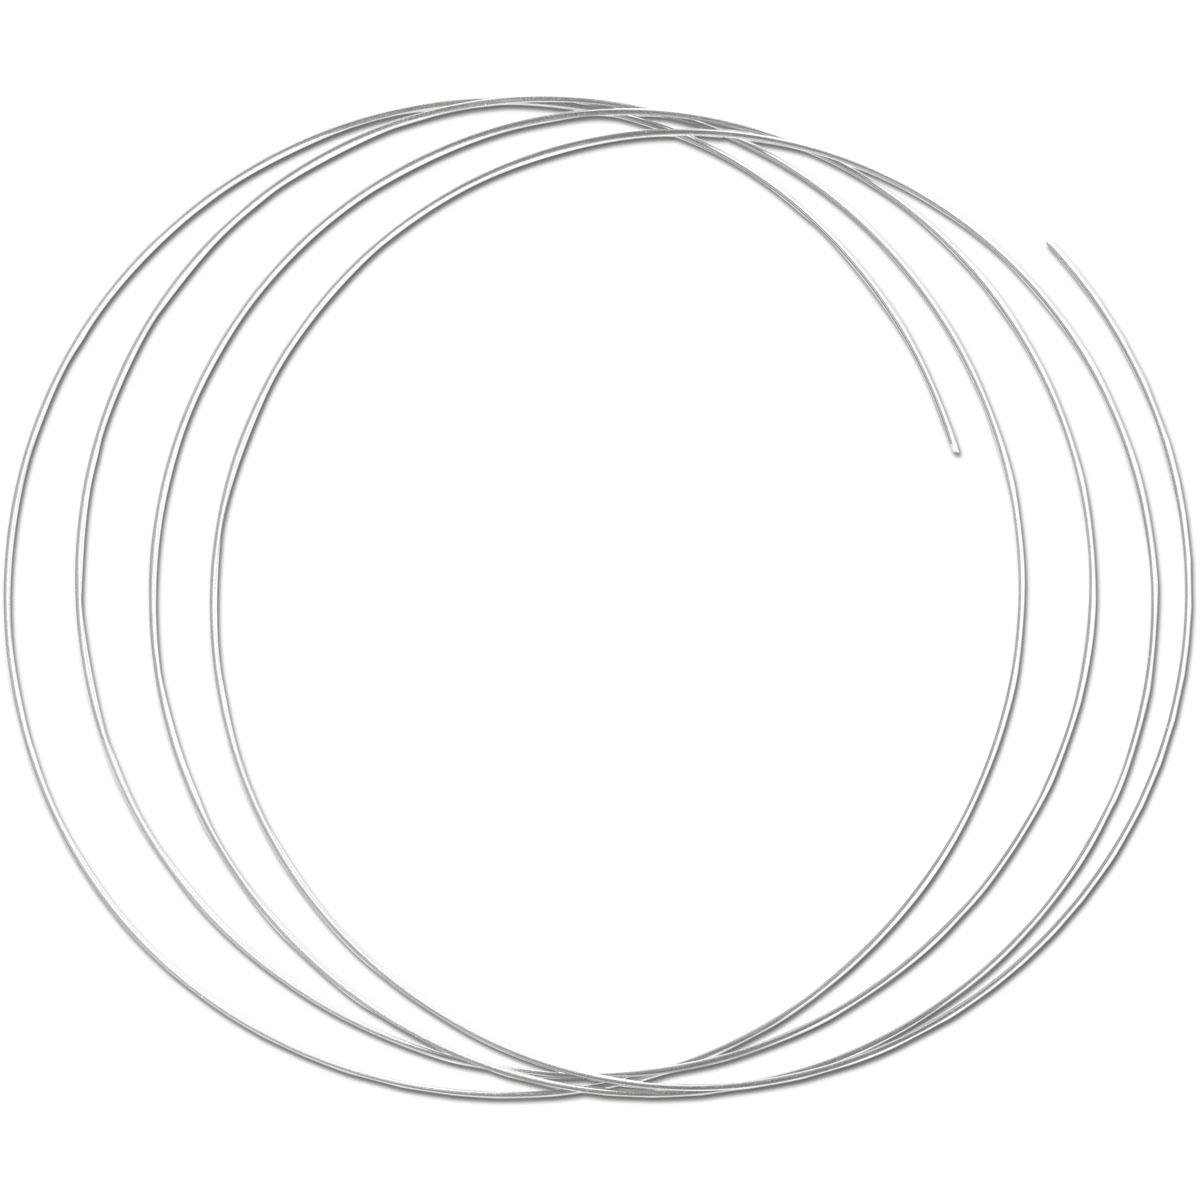 22ga Beadalon Stainless Steel Memory Wire Coil, Necklace, 1oz